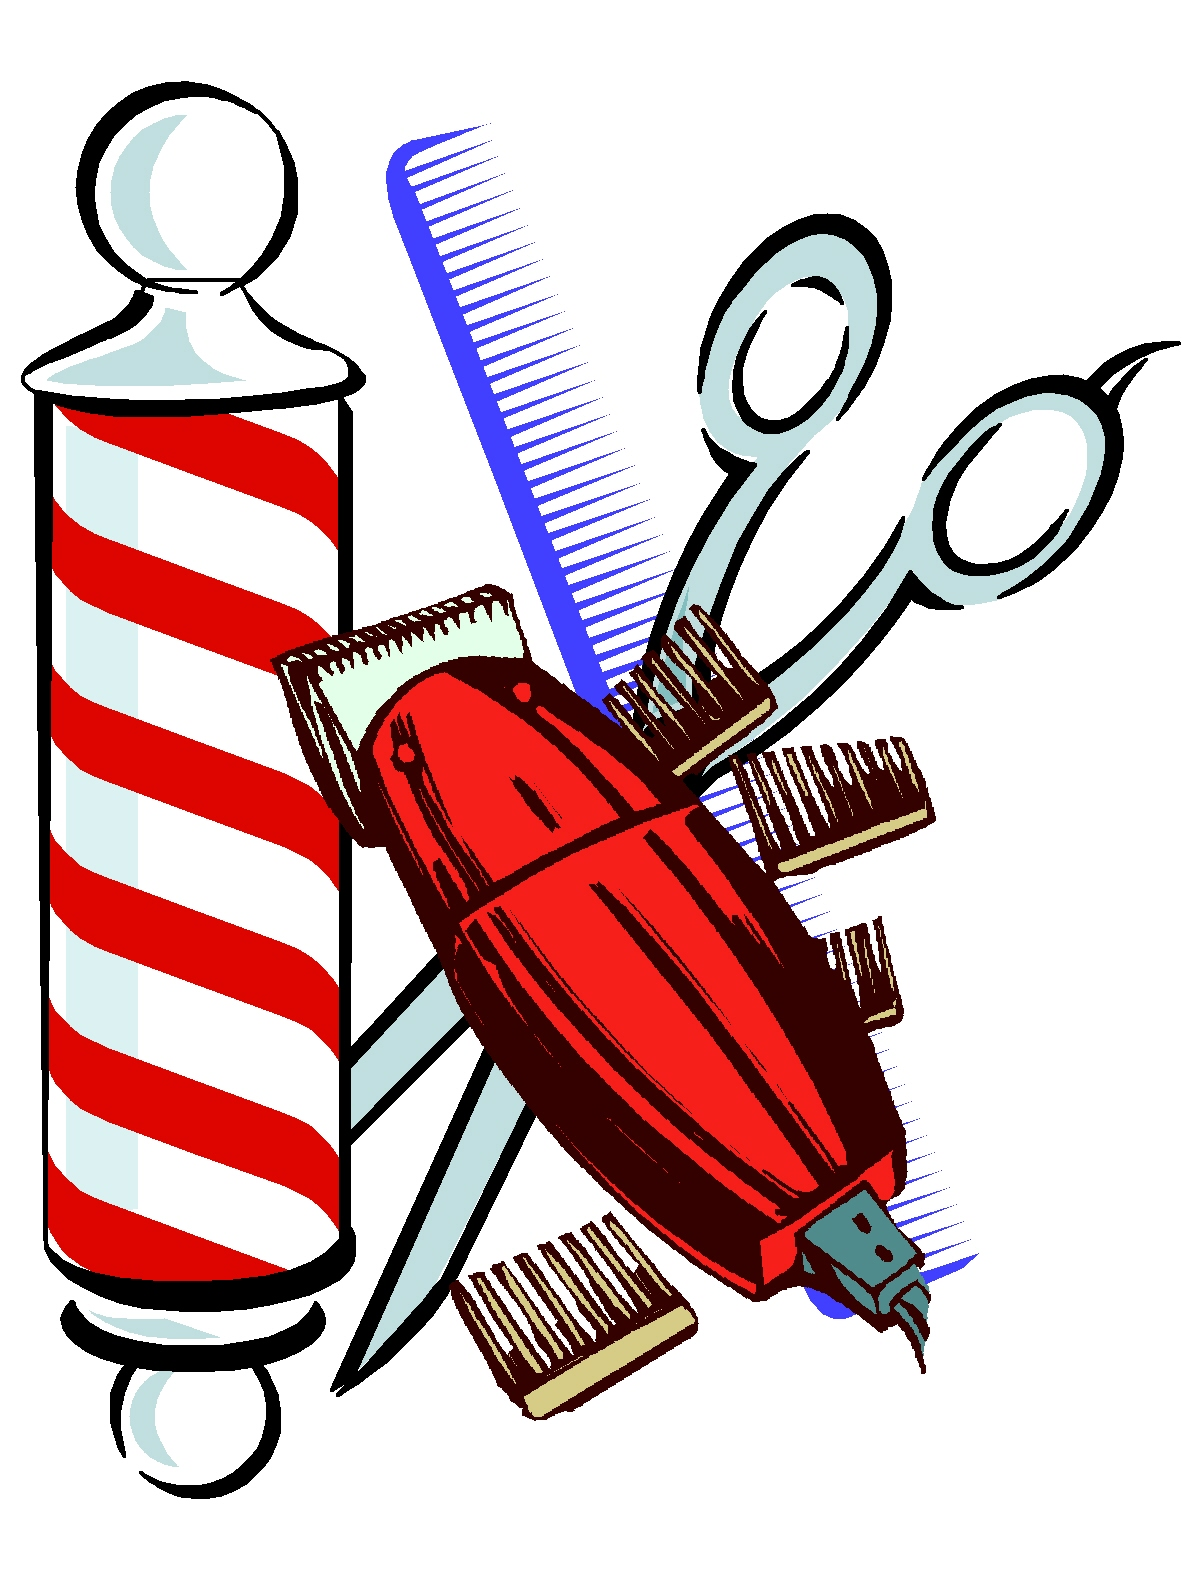 barber clippers svg - HD 1204×1579